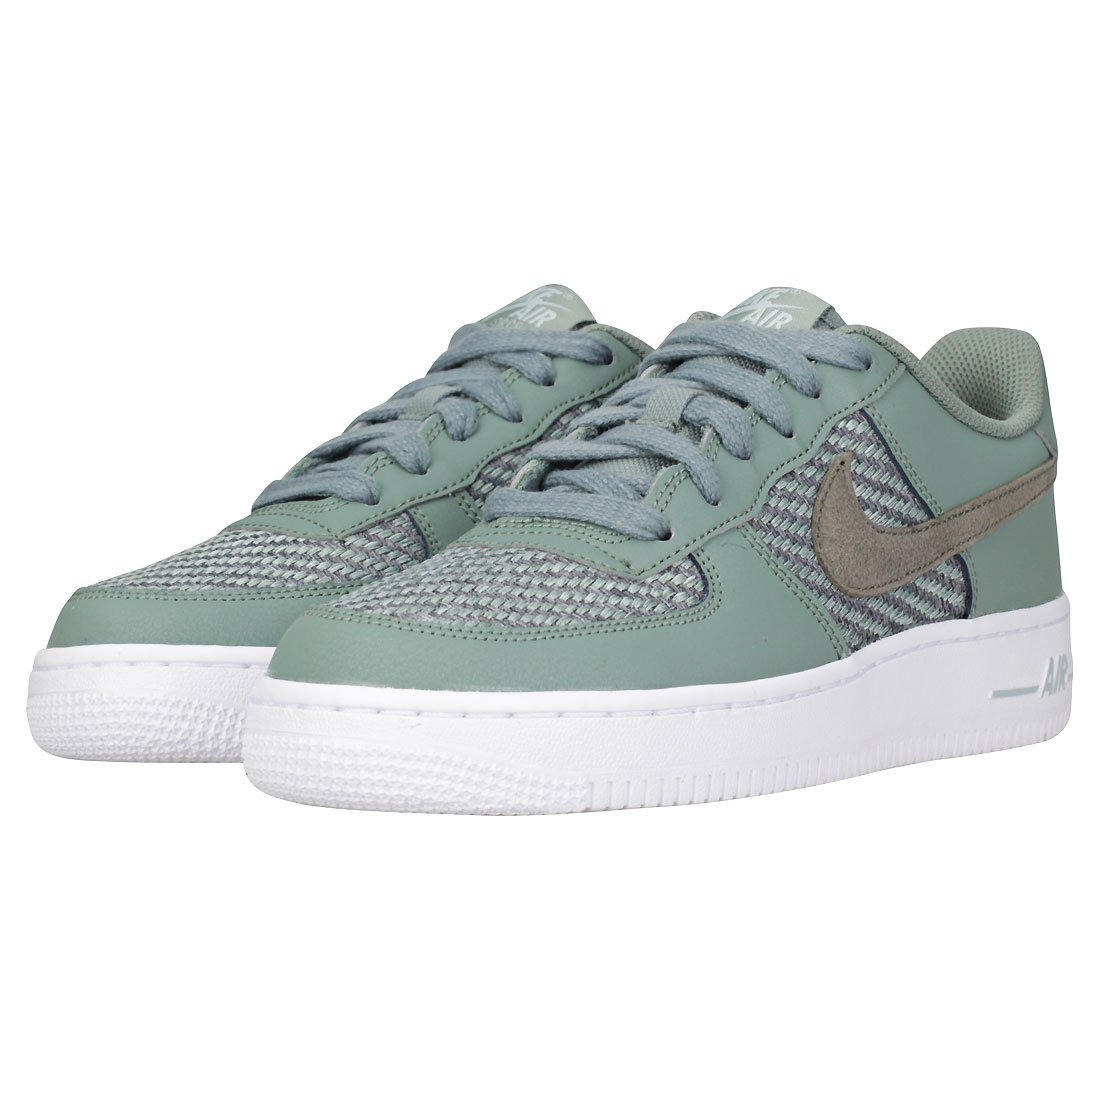 bfbf4cfda208c NIKE Air Force 1 Lv8 Gs Kids Trainers: Amazon.co.uk: Shoes & Bags